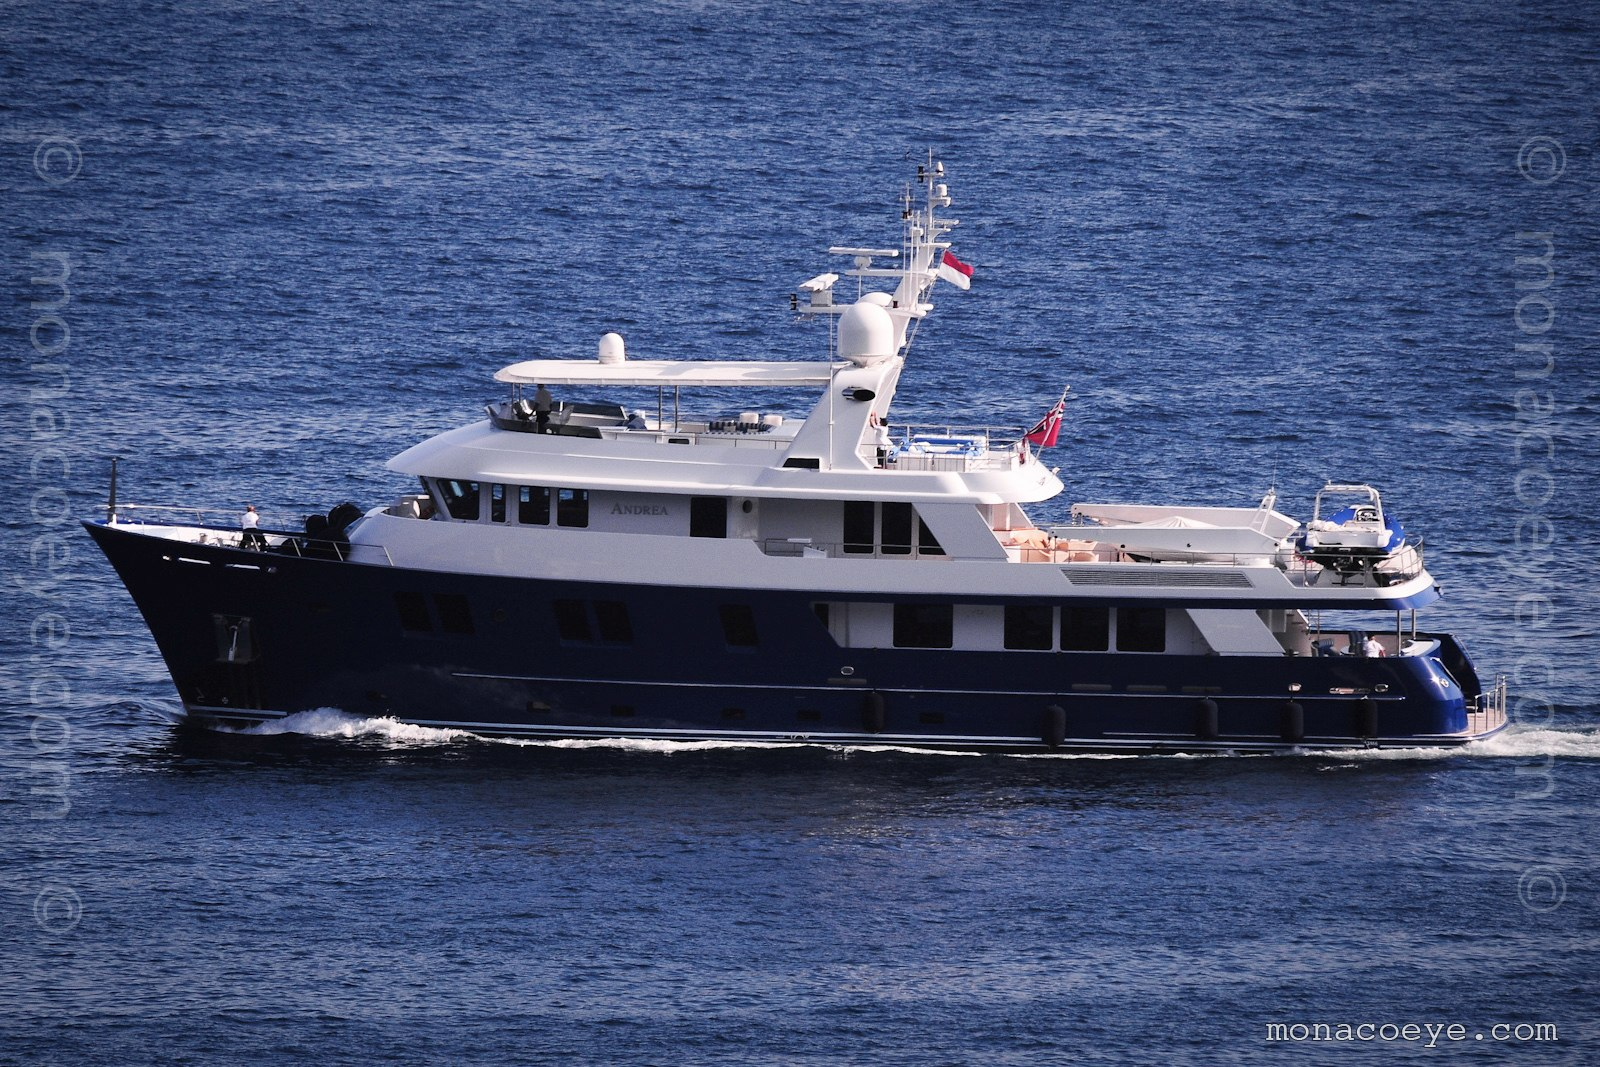 Andrea. Yacht built by Delta Marine, build number 126-002, 2003, 38 metres. Designed by Michael Kirchstein